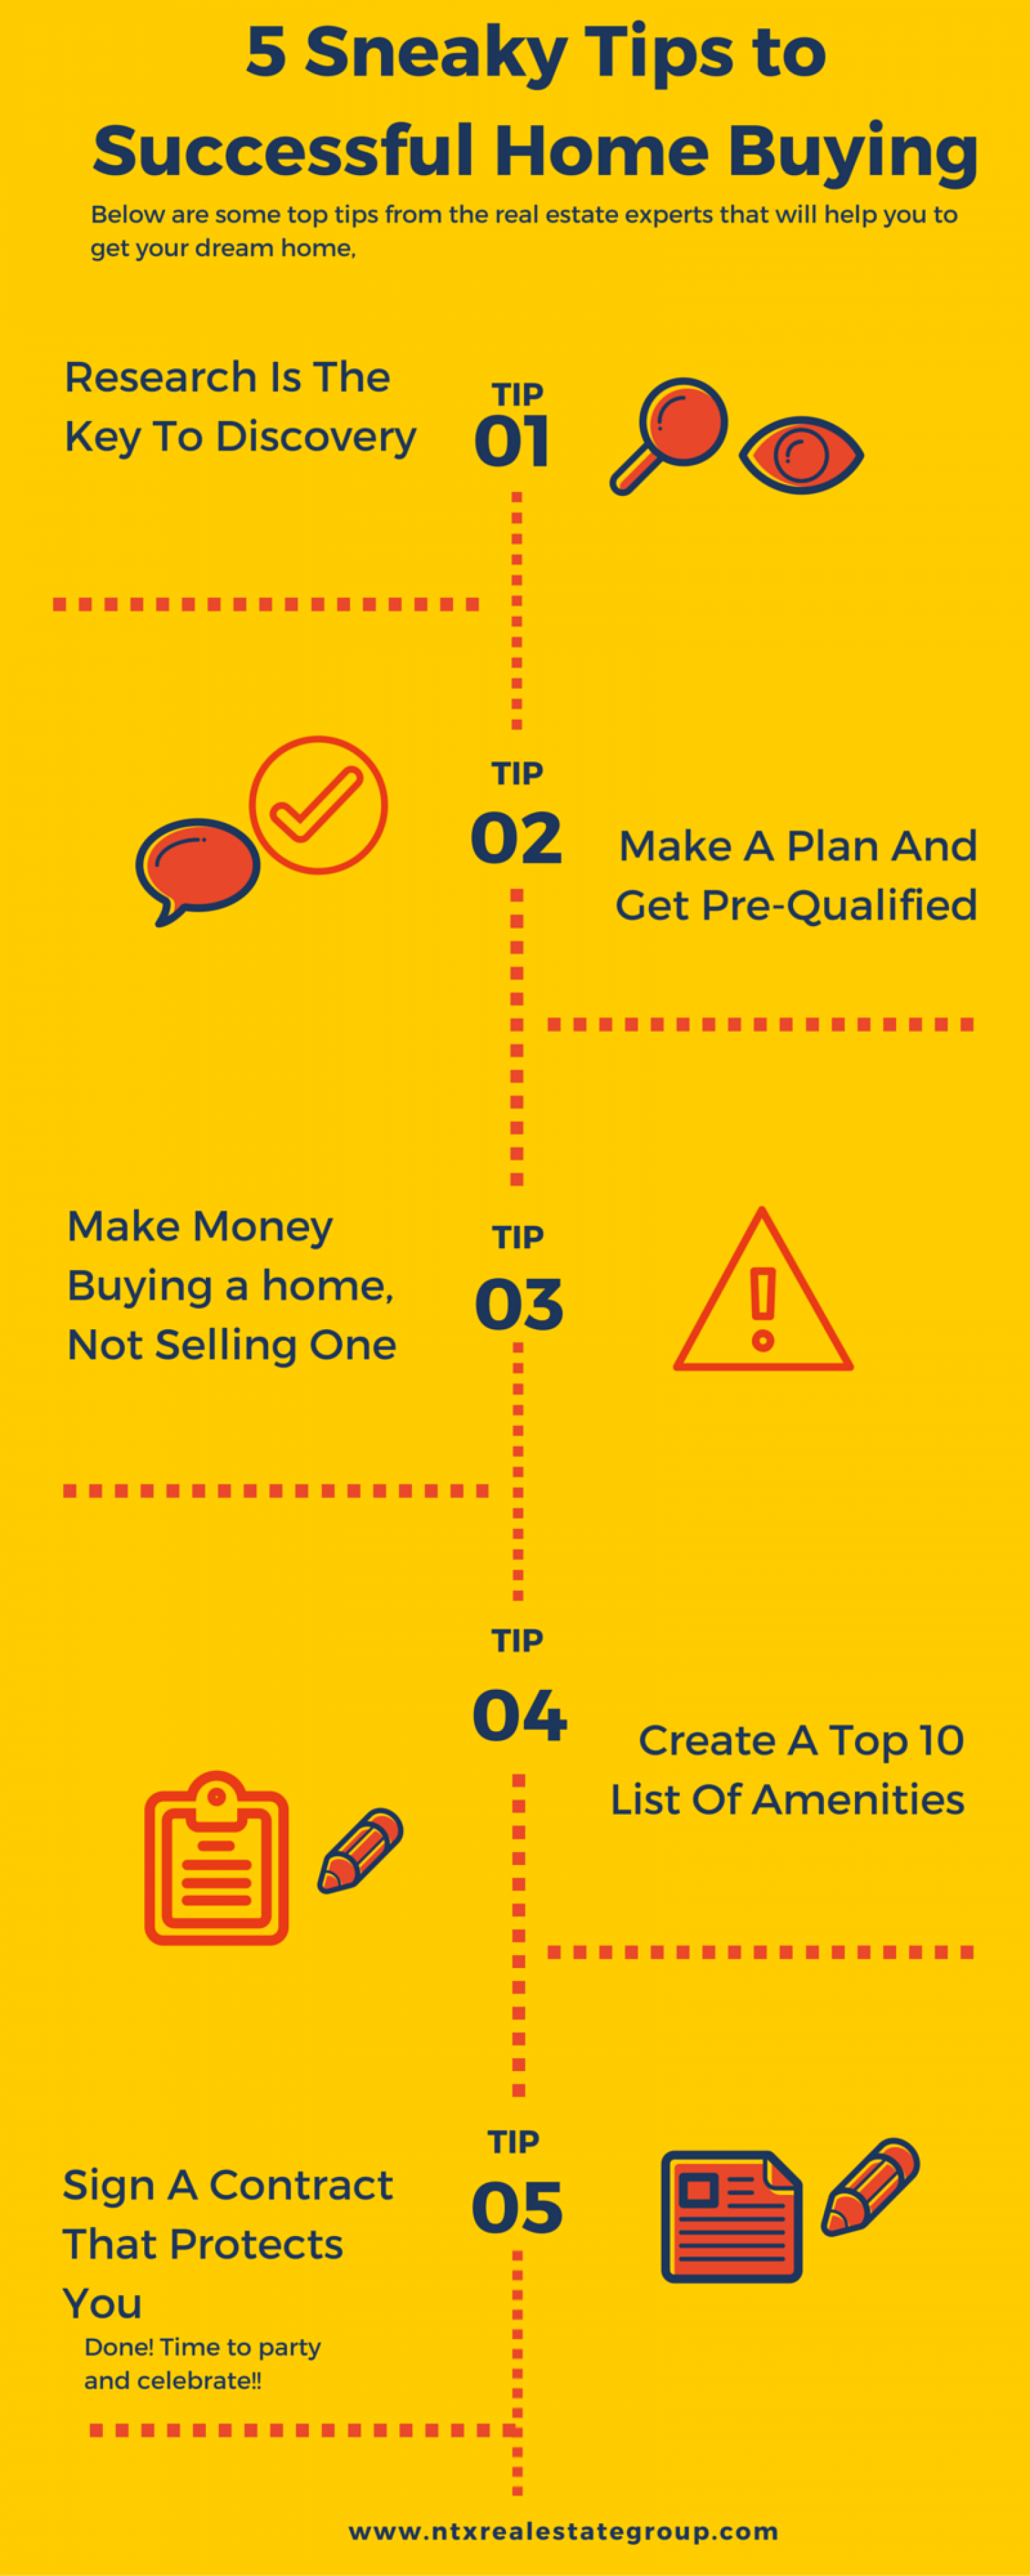 5 Sneaky Tips To Successful Home Buying - North Texas Real Estate Group Infographic